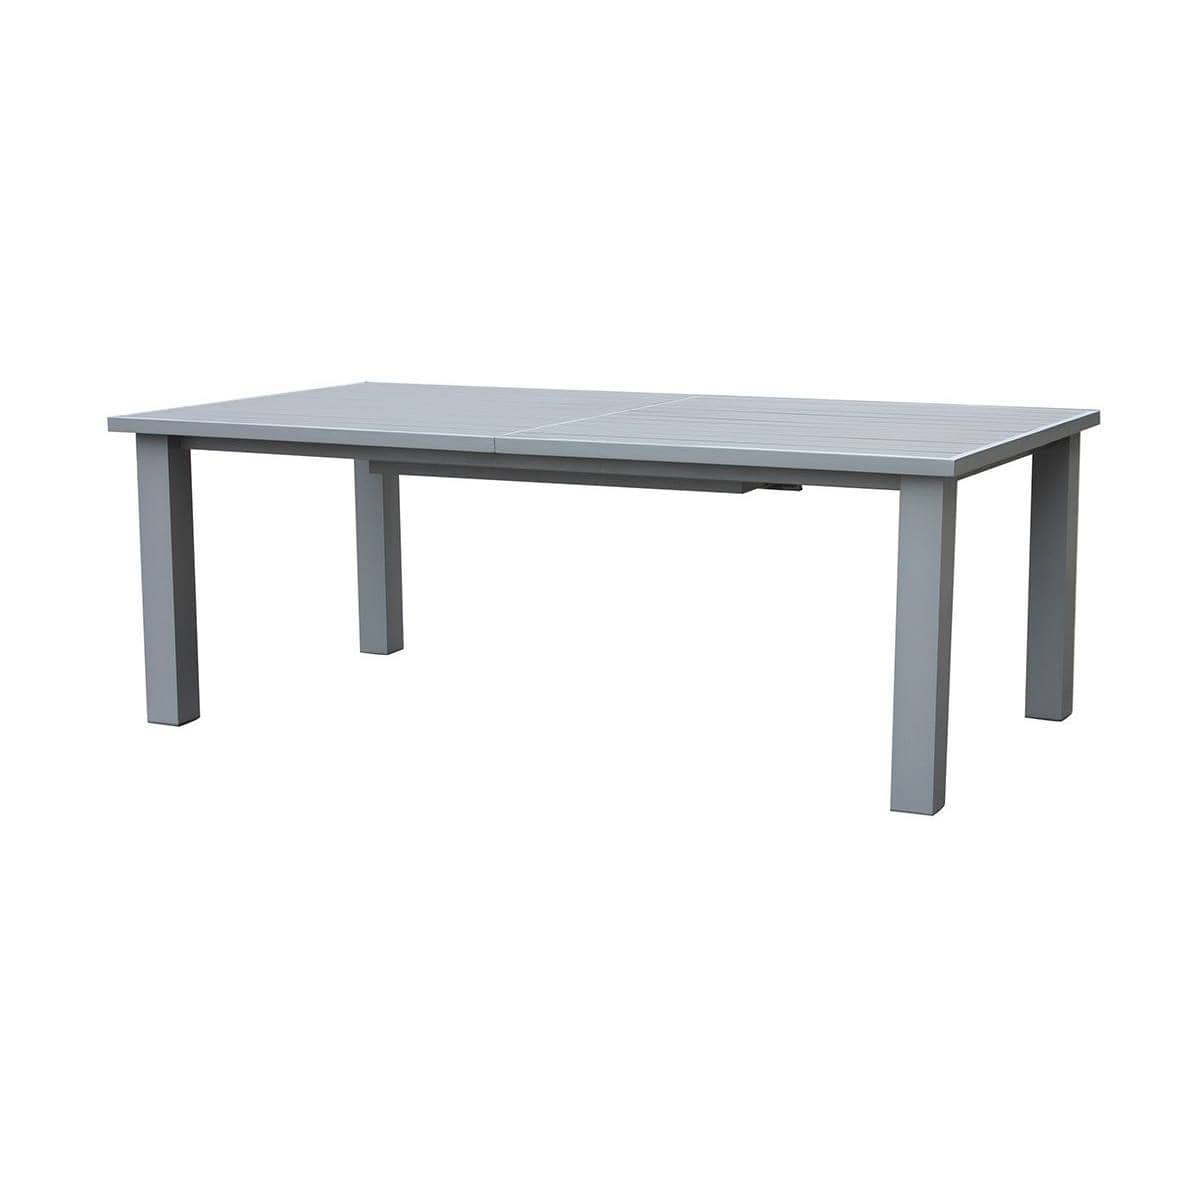 Ratana Furniture - Dining Mezo Extendable Table